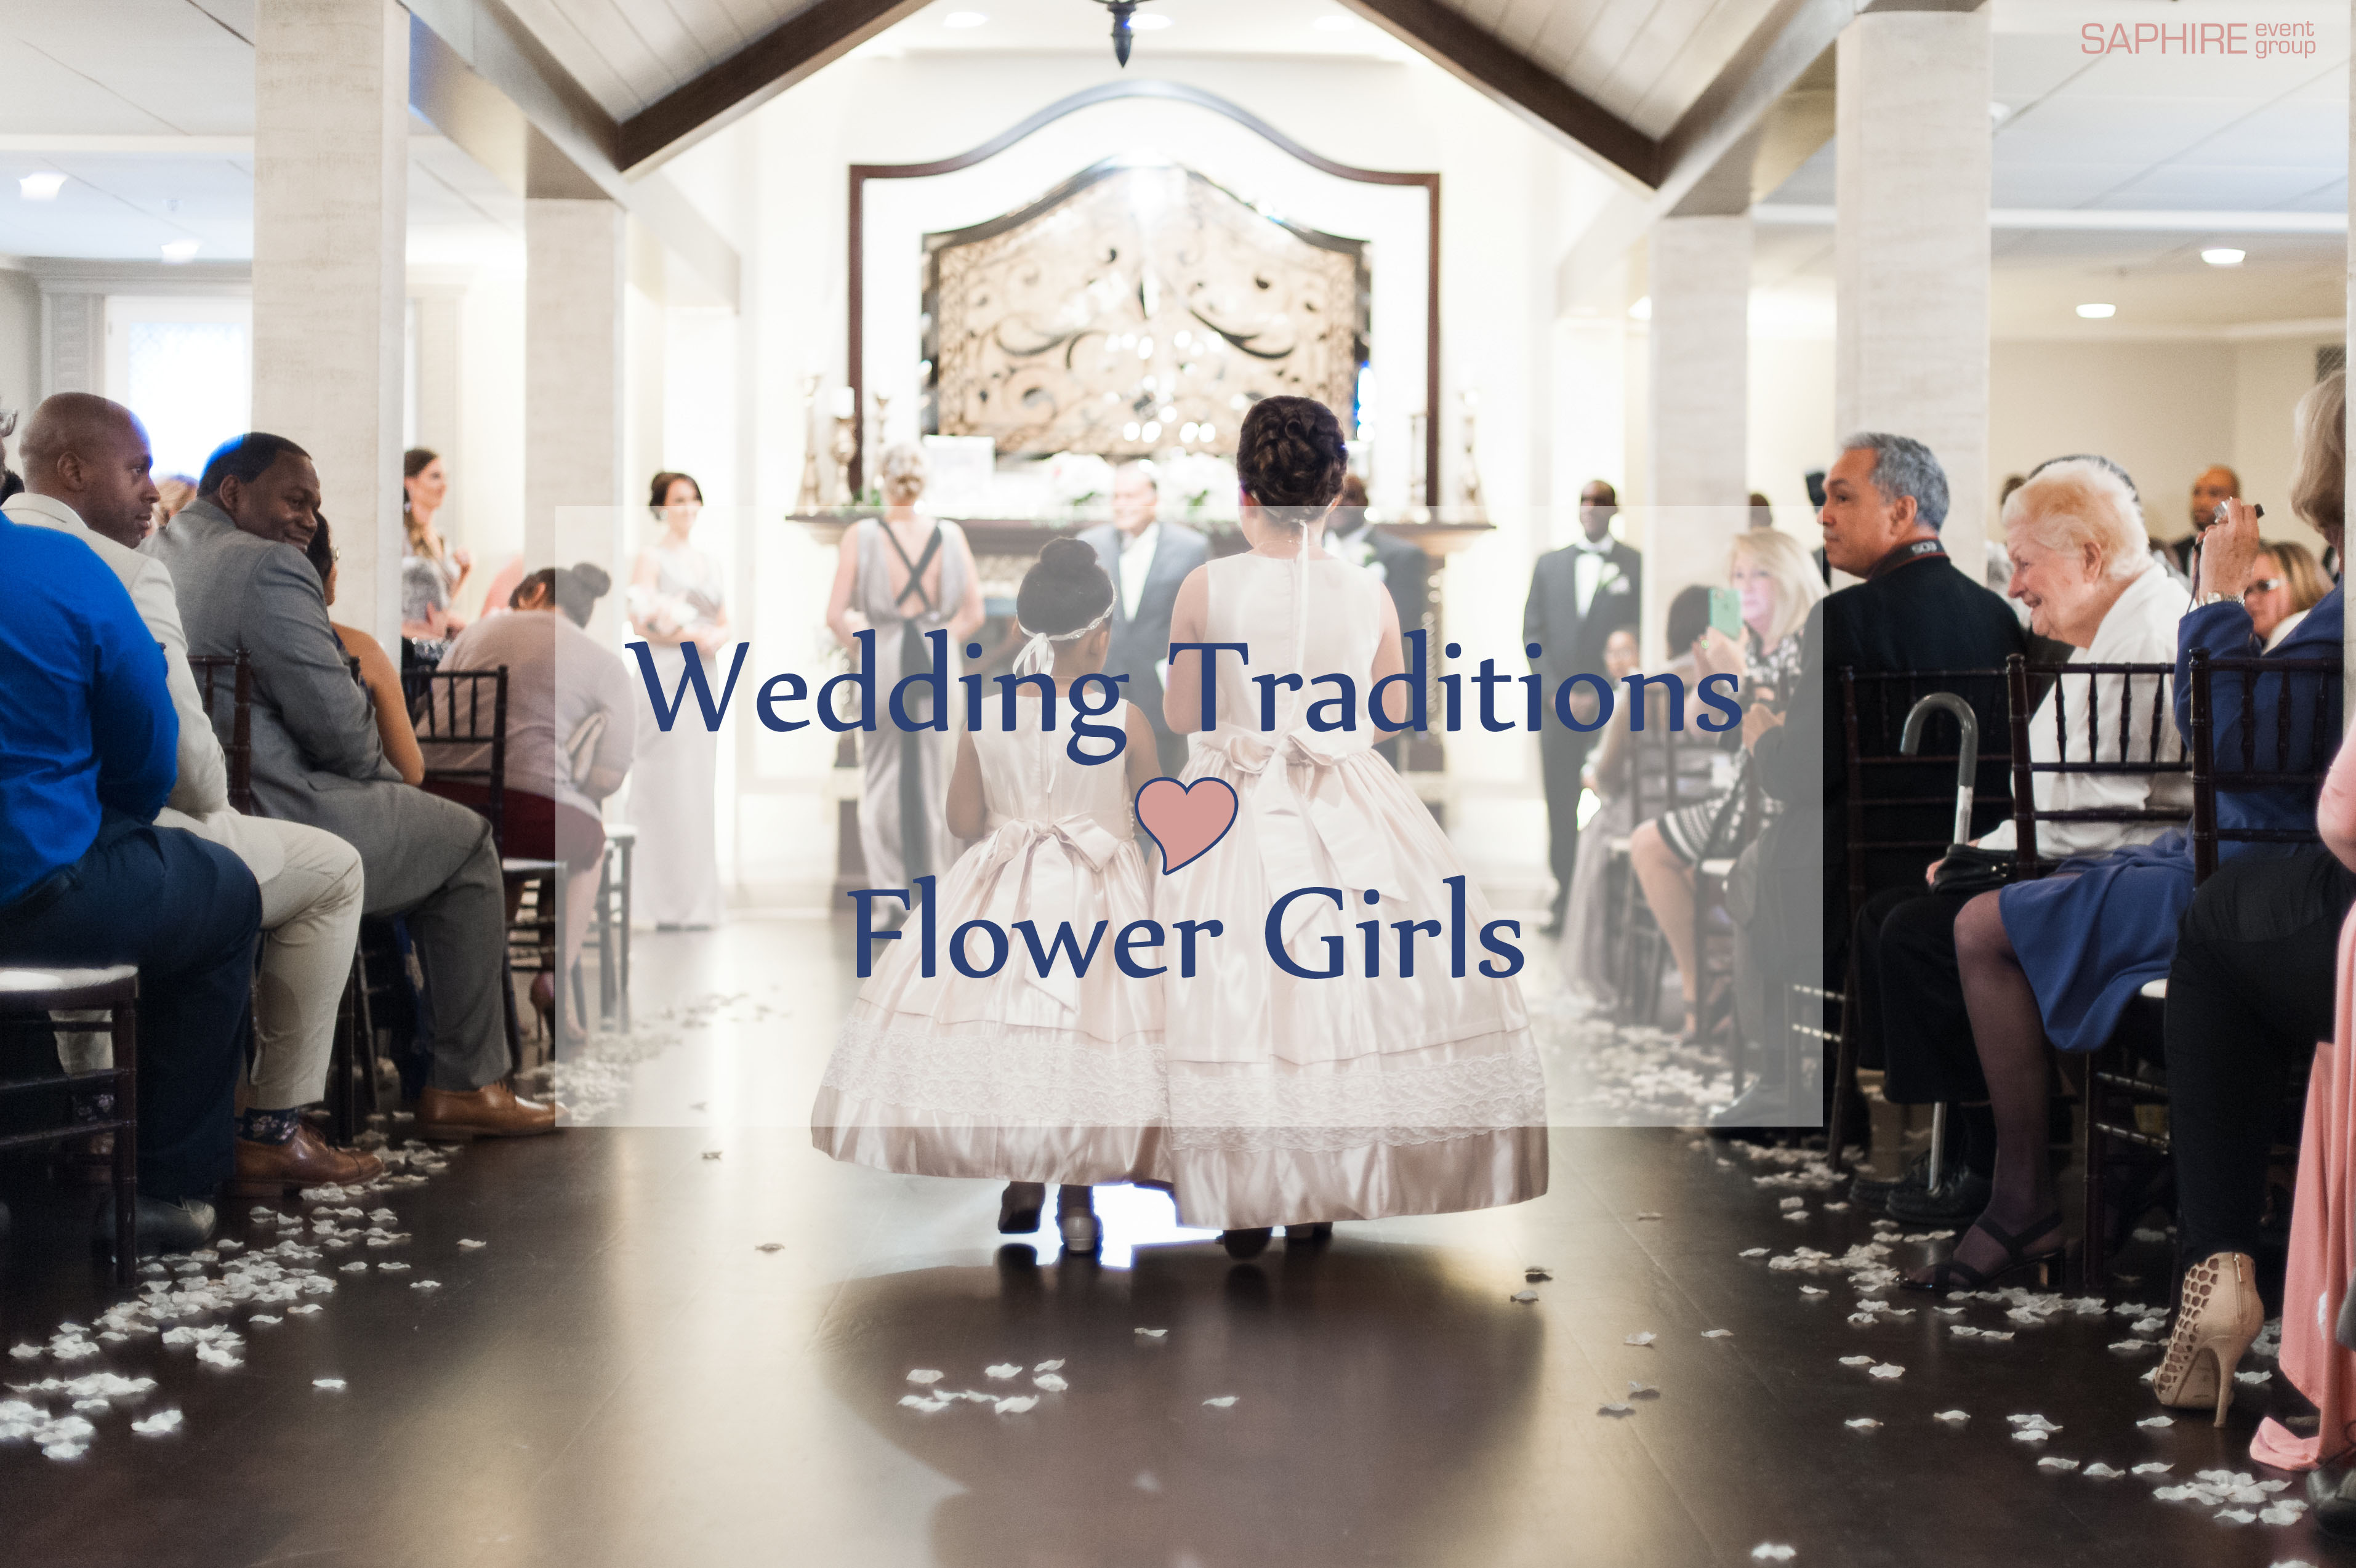 Wedding Traditions: The History of the Flower Girl